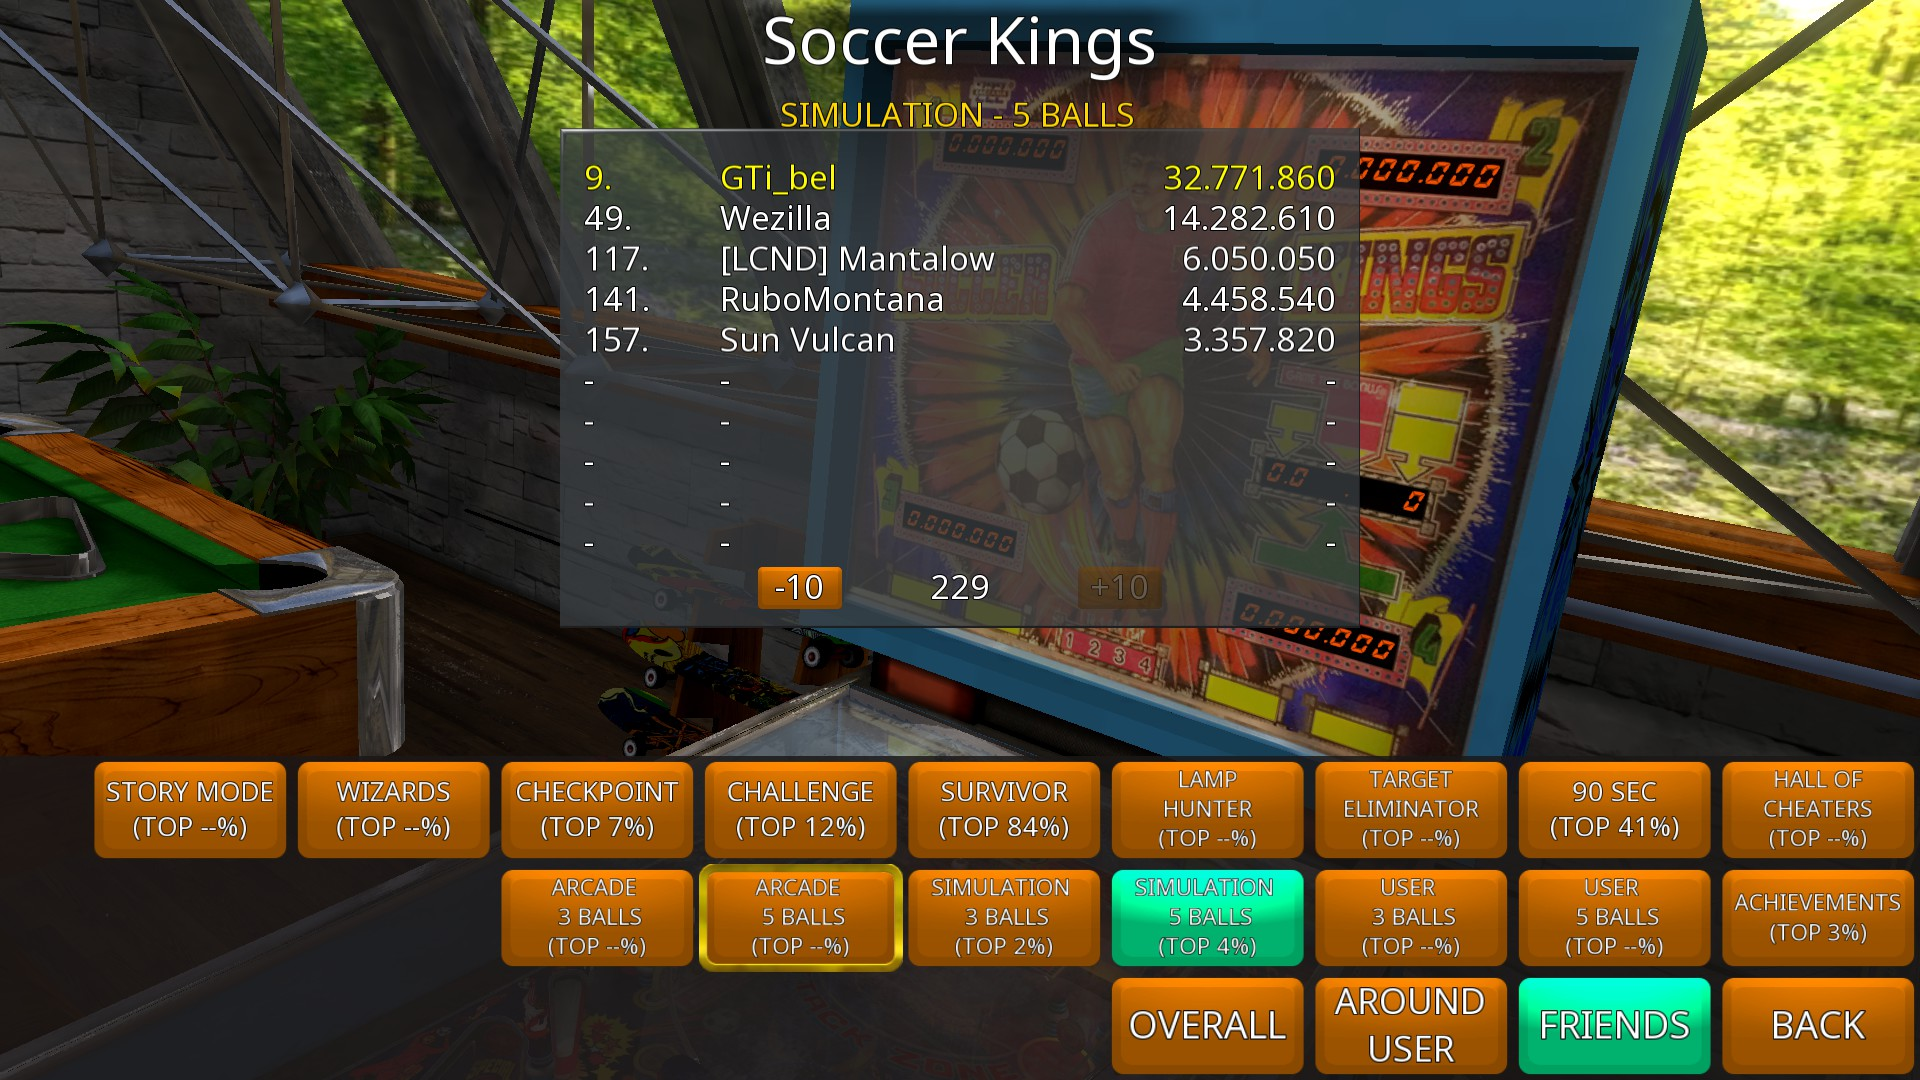 Zaccaria Pinball: Soccer Kings [5 balls] 32,771,860 points